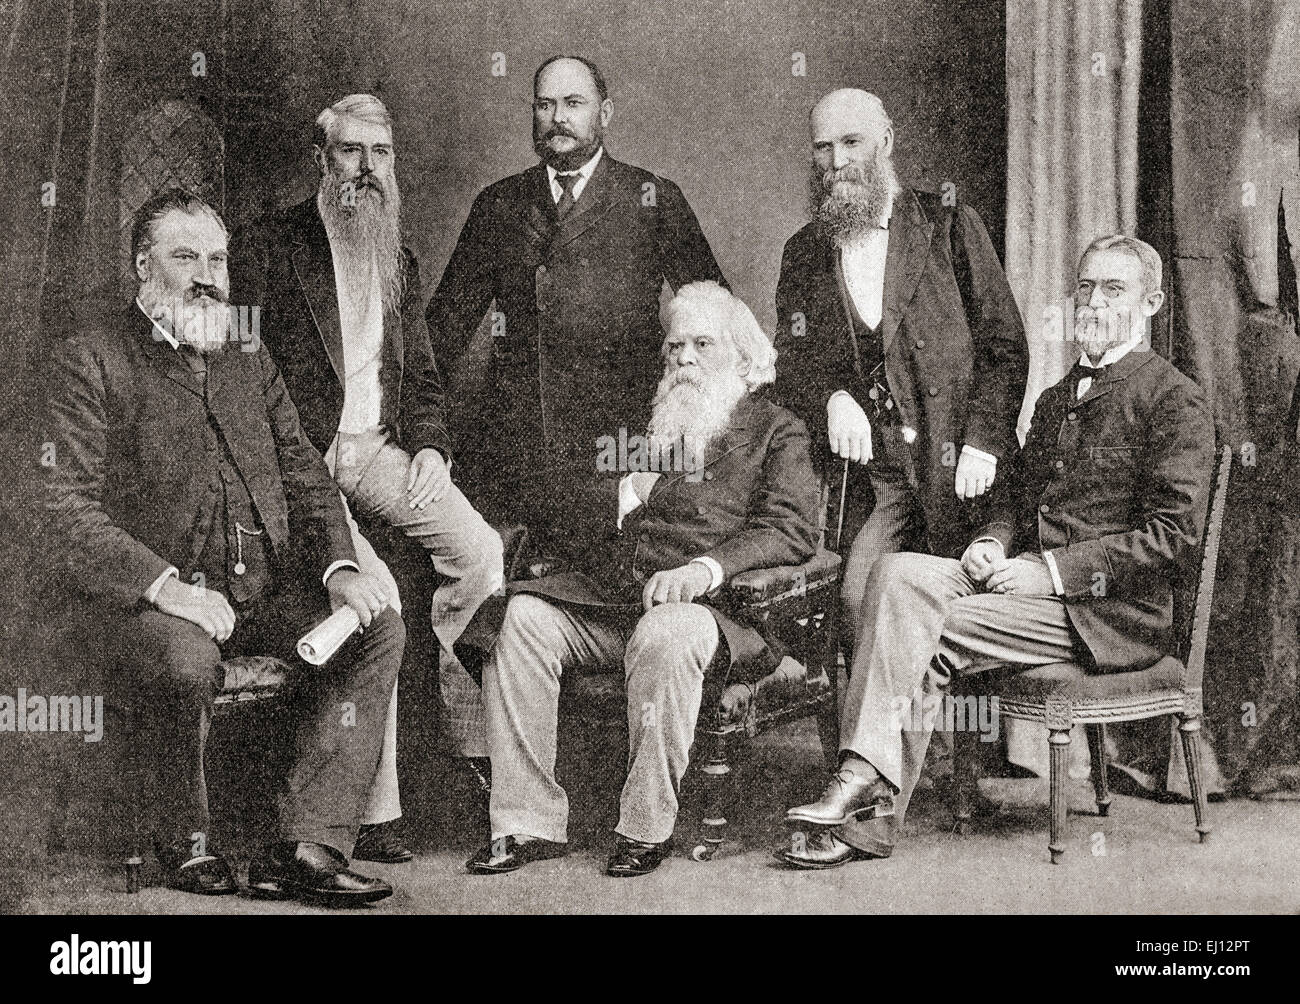 Six Australian premiers, from left to right:  Thomas Playford,  1837 – 1915.  Premier of South Australia.   Sir - Stock Image